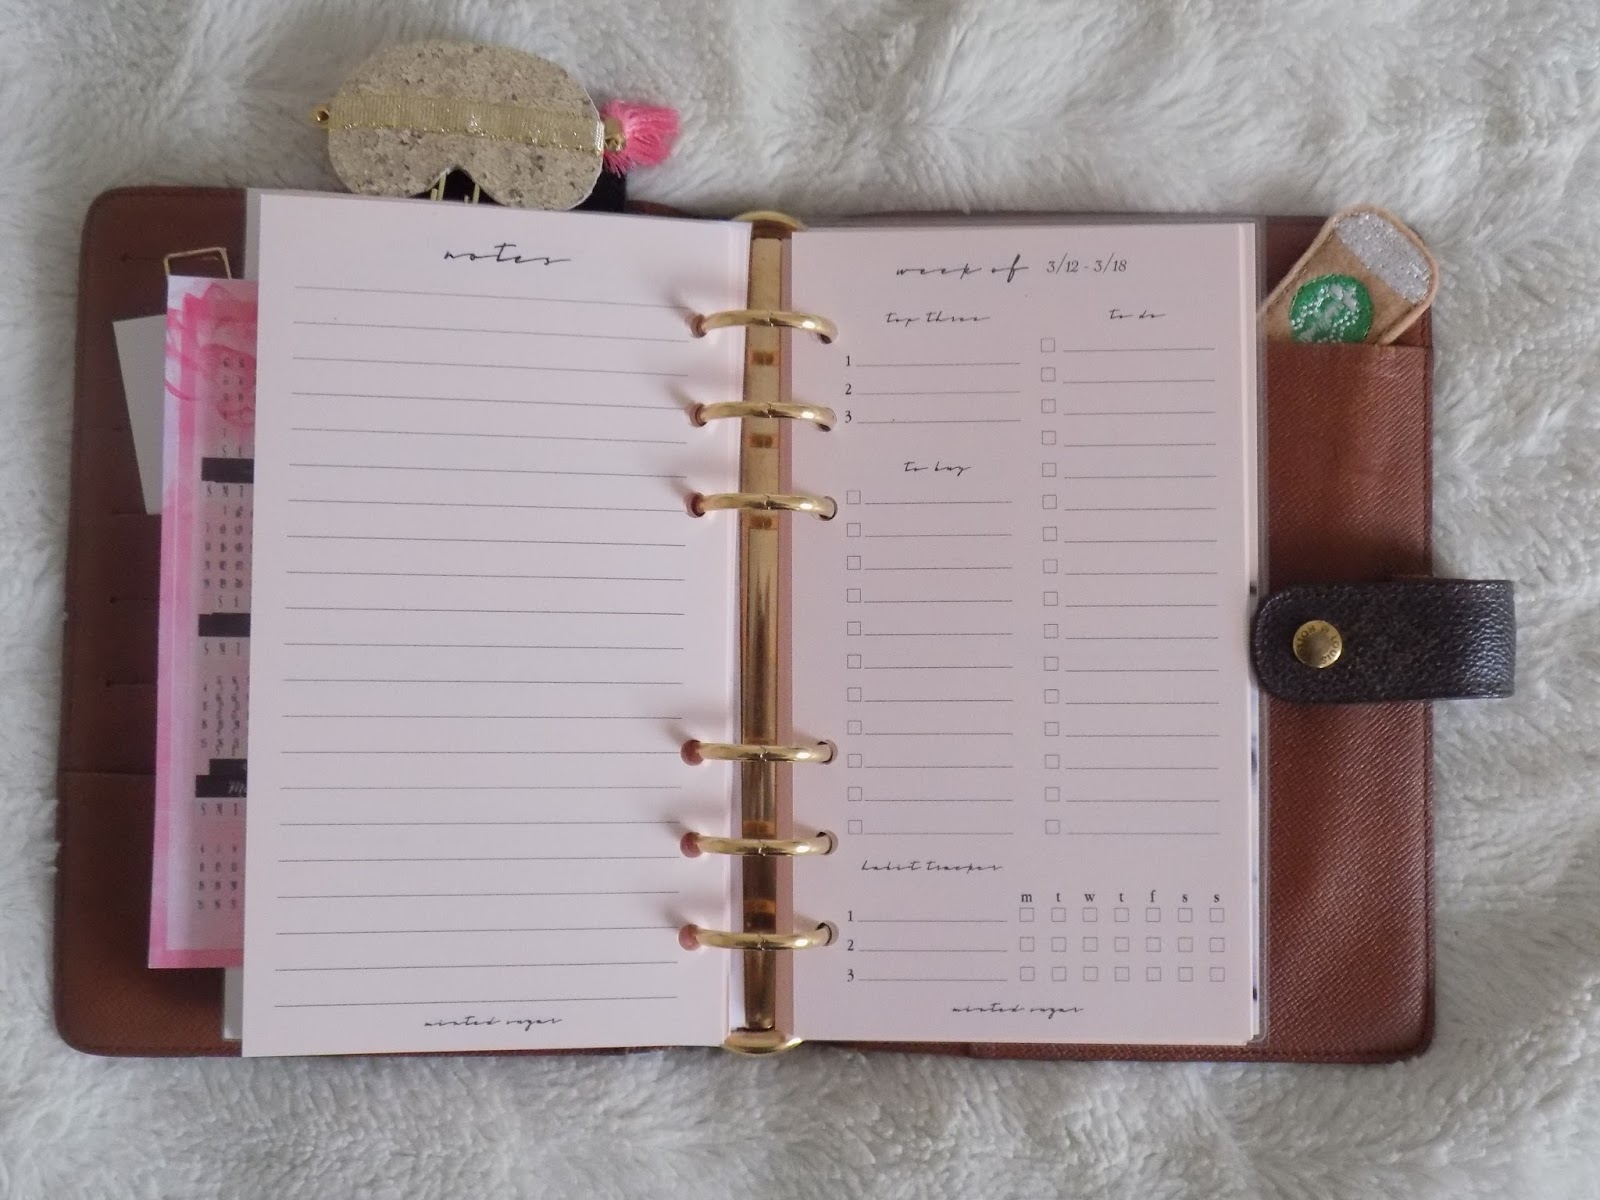 41a4c8ae91d Royally Planned: LV Agenda MM - Royally Pink